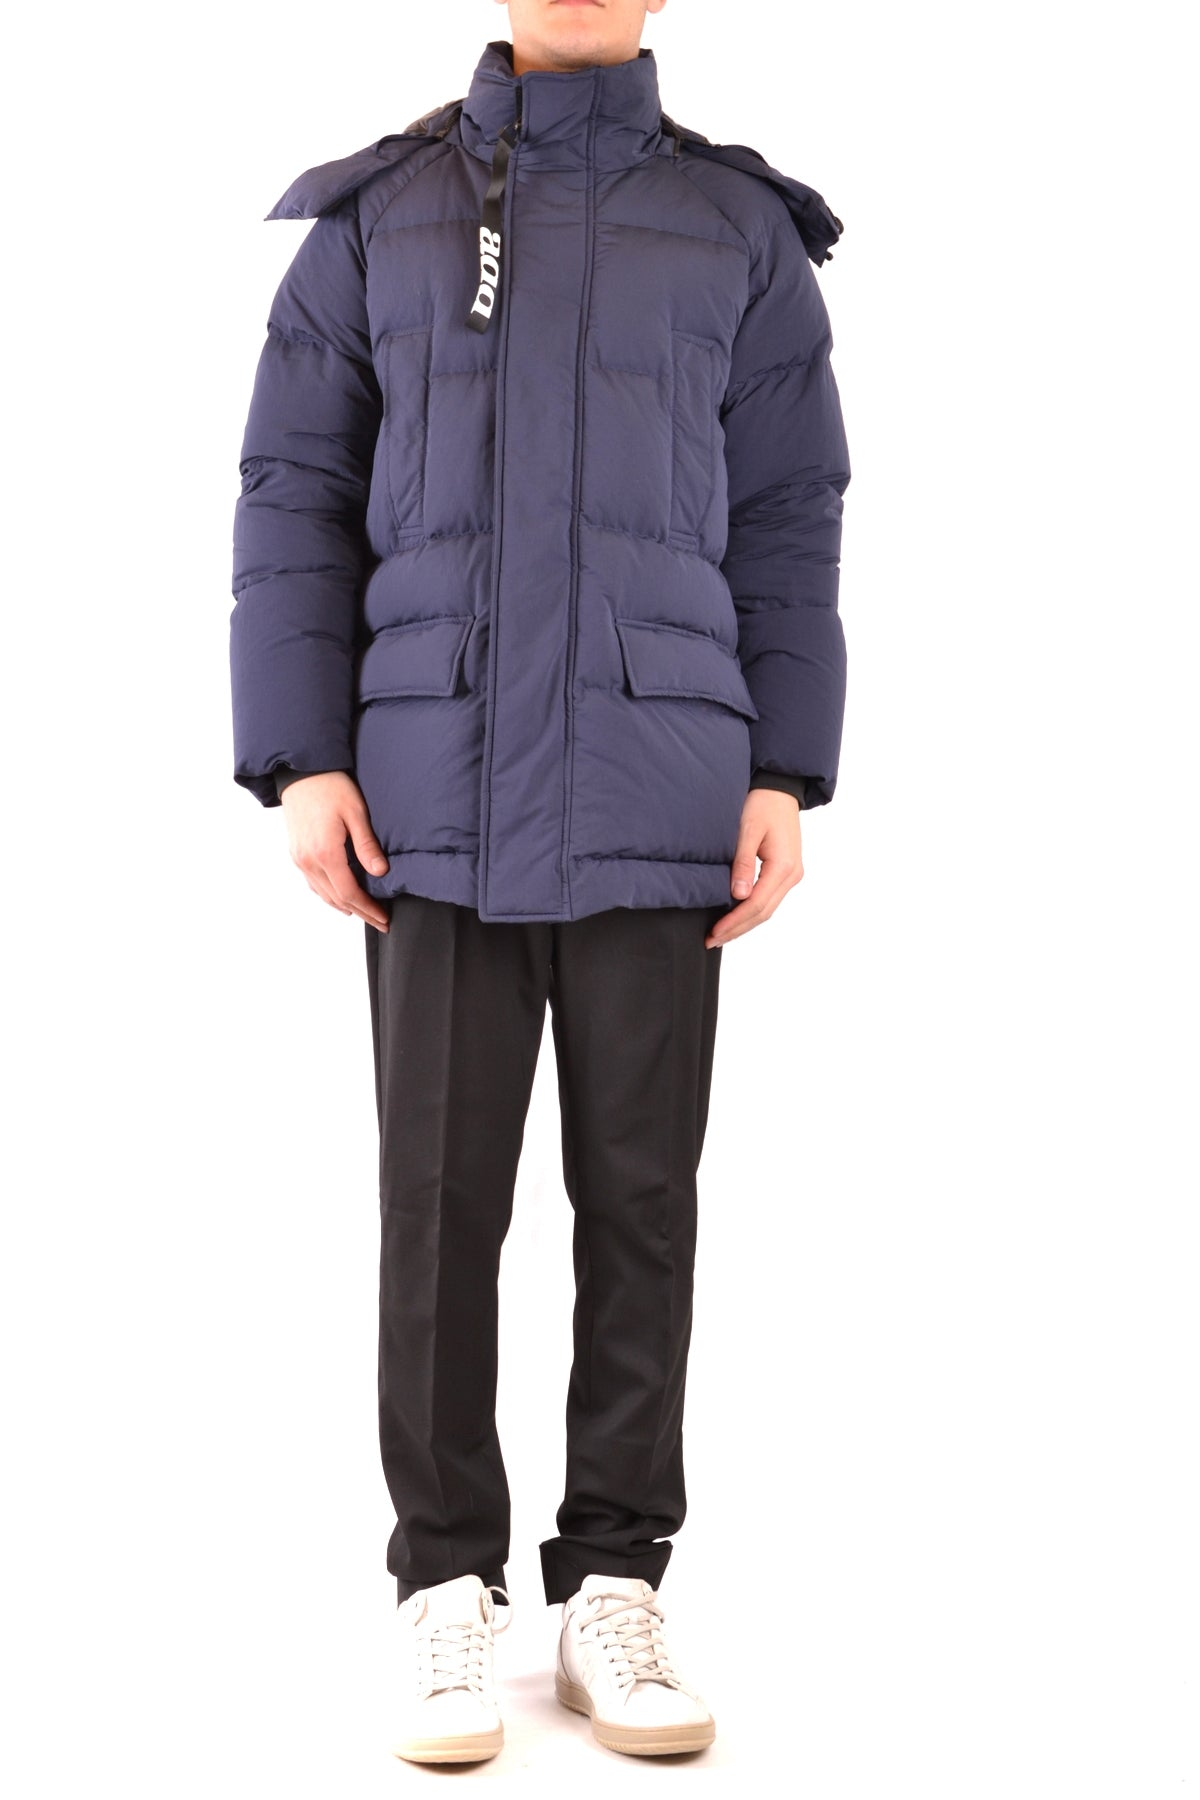 Jacket Add-Men's Fashion - Men's Clothing - Jackets & Coats - Jackets-S-Product Details Terms: New With LabelClothing Type: BlousonMain Color: BlueSeason: Fall / WinterMade In: ChinaGender: ManSize: IntComposition: Down 100%Year: 2018Manufacturer Part Number: Kam850-Keyomi-Sook